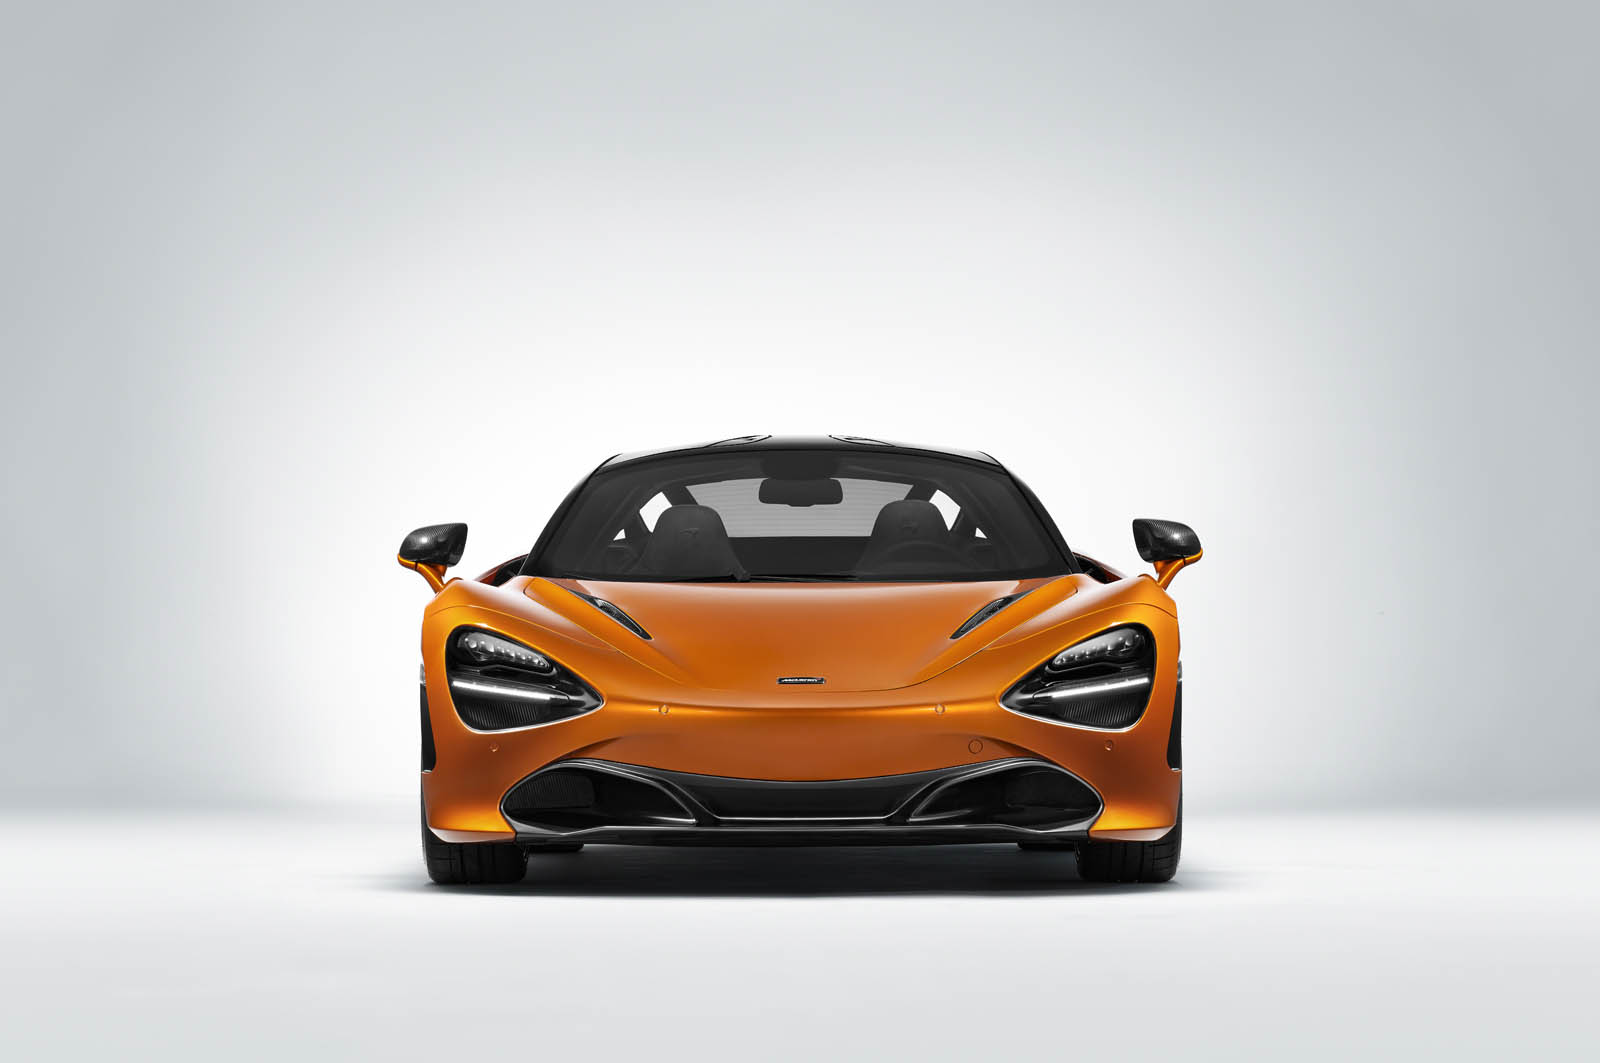 medium resolution of mclaren automotive the surrey england based manufacturer of luxury high performance sports and supercars has renewed the super series product family at